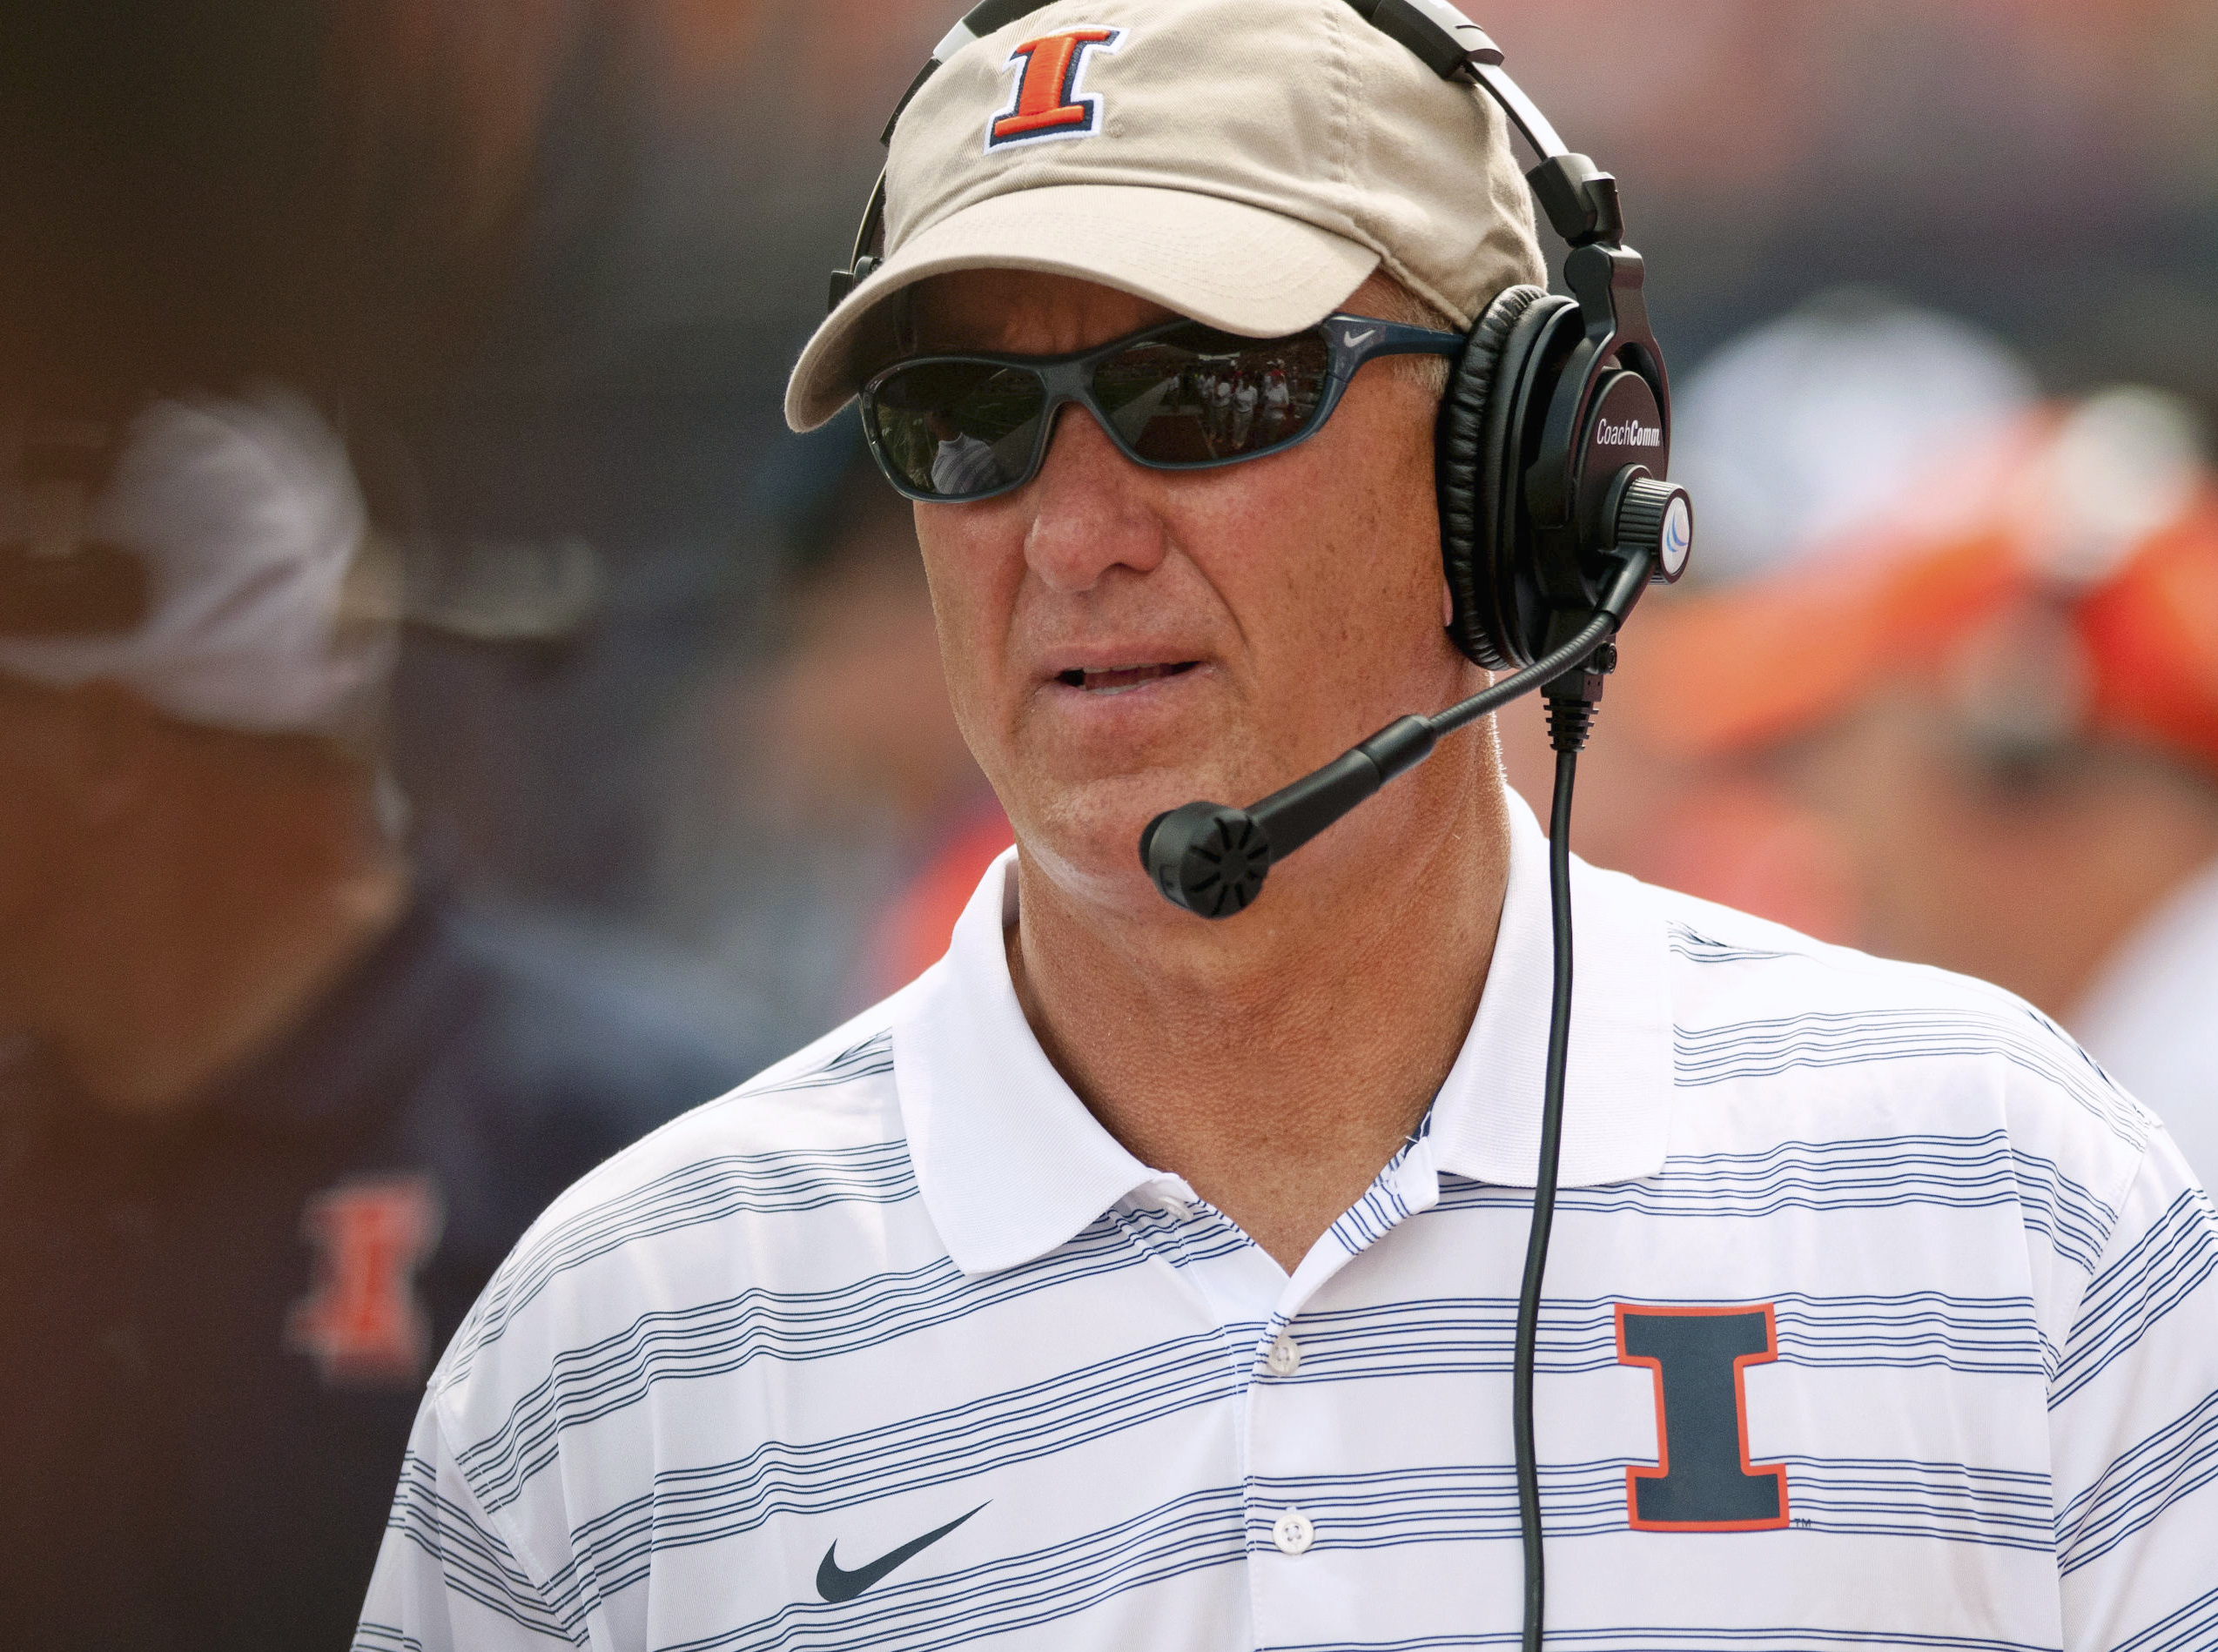 FILE - In this Aug. 30, 2014, file photo, Illinois offensive coordinator Bill Cubit watches from the sidelines during an NCAA college football game against Youngstown State in Champaign, Ill. Cubit says keeping returning quarterback Wes Lunt healthy is a